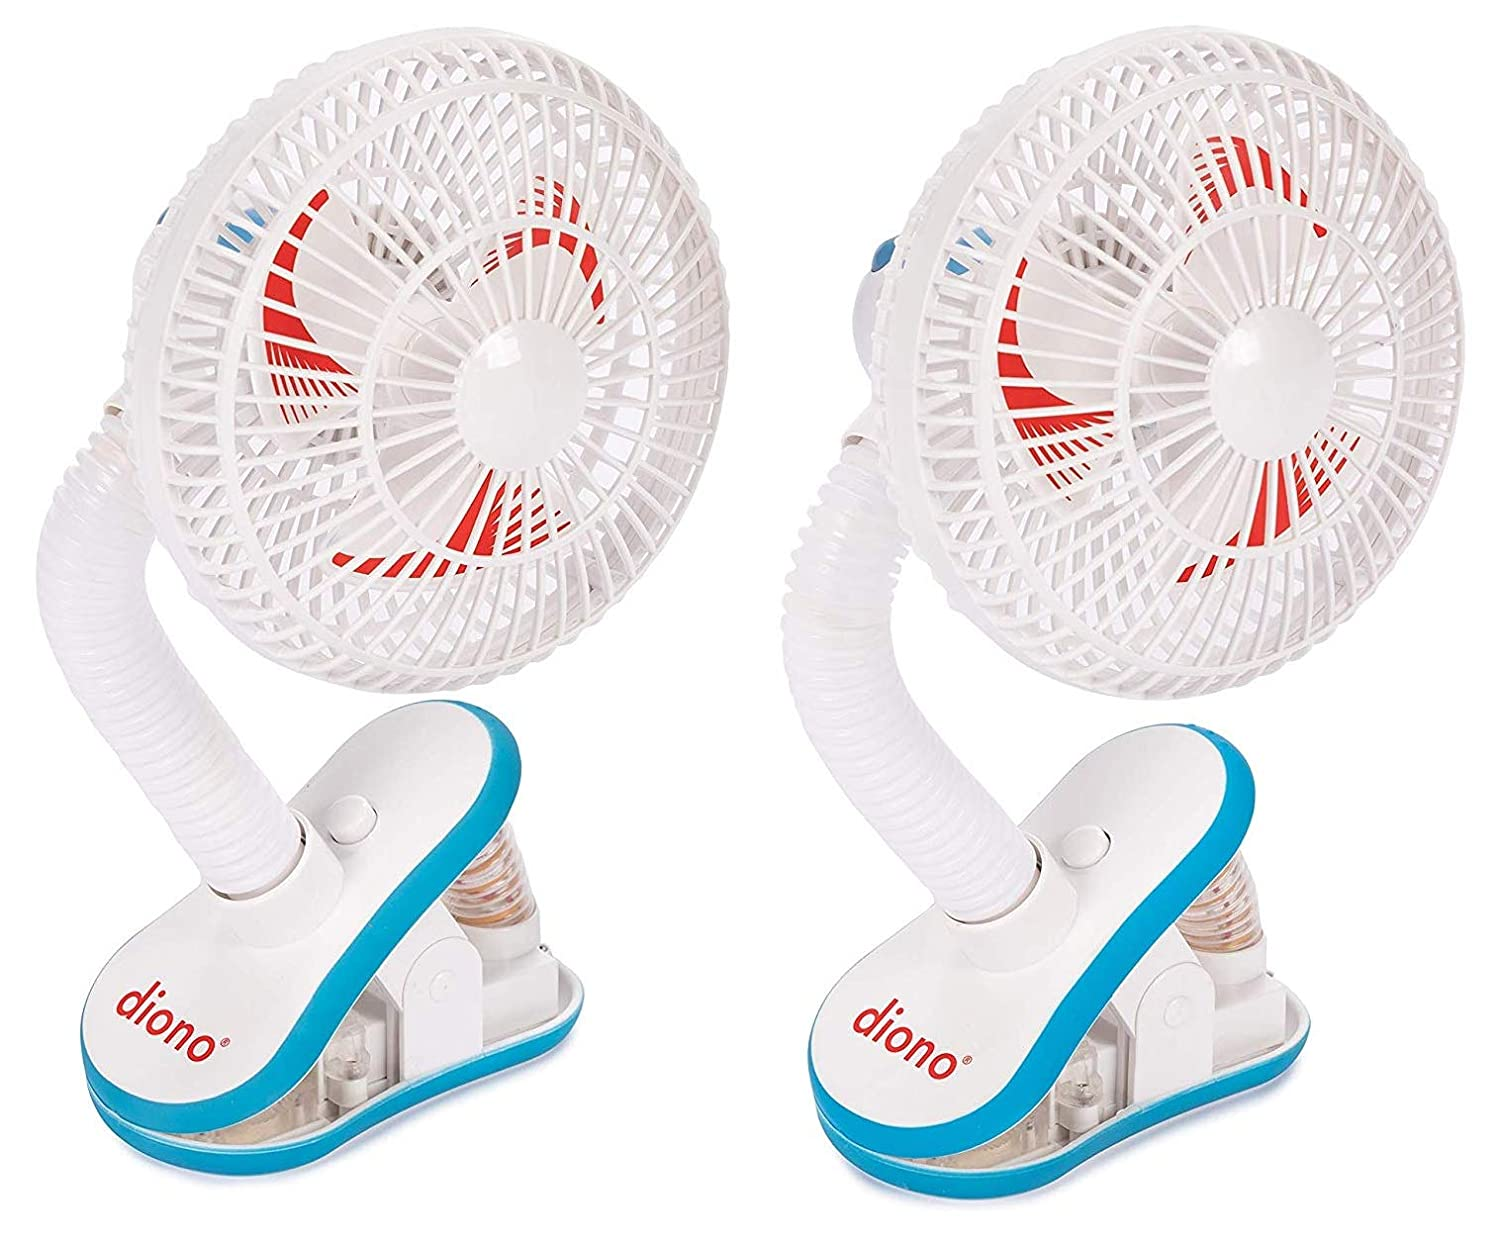 Diono Stroller Fans, Pack of 2 Clip On Baby Safe Stroller Fans with Flexible Neck for Perfect Angle, Universal Fit with Most Strollers